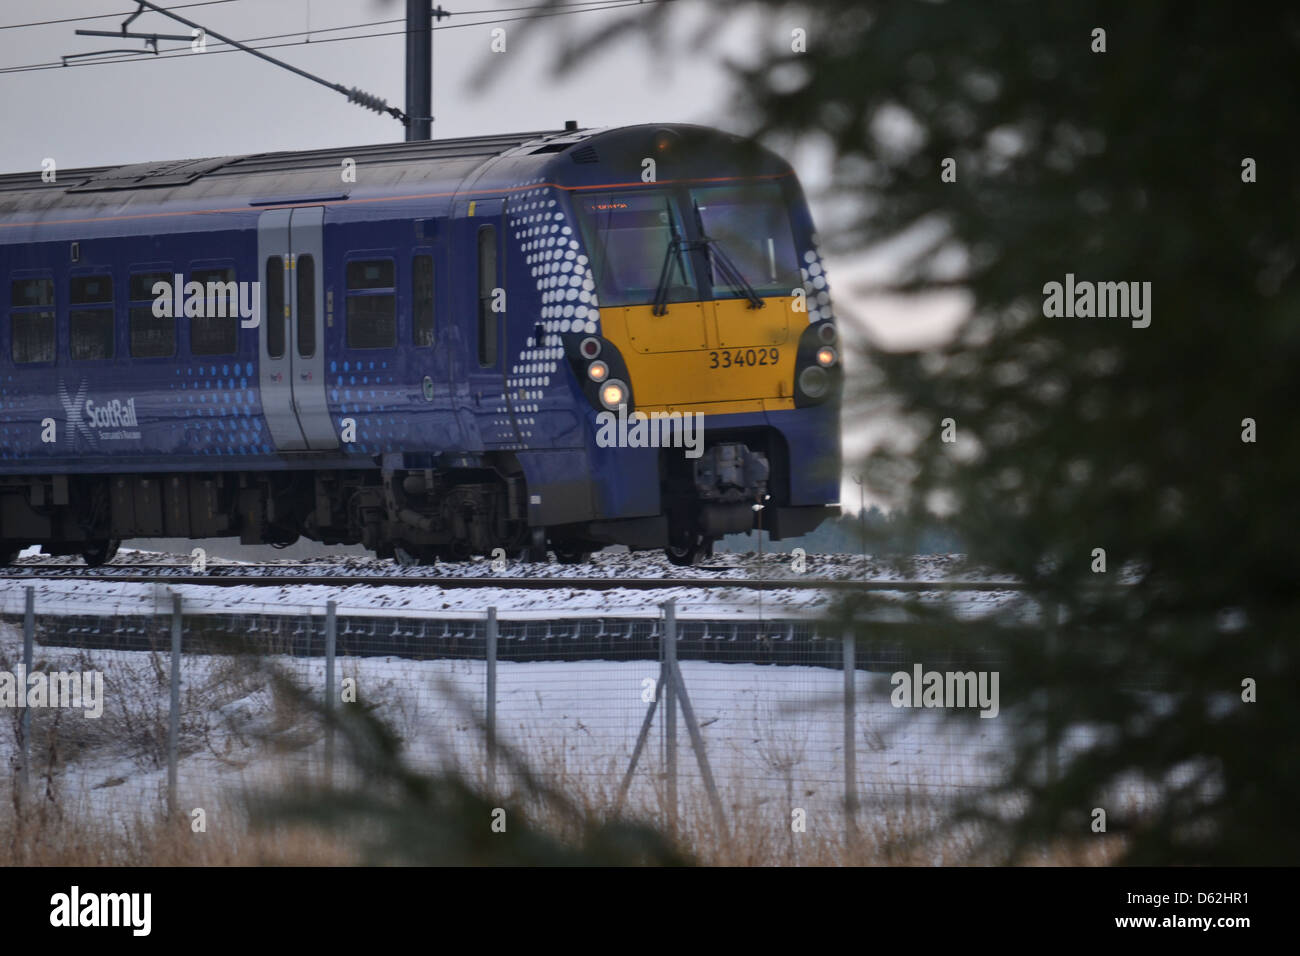 Scotrail train on the Edinburgh to Helensburgh line - Stock Image